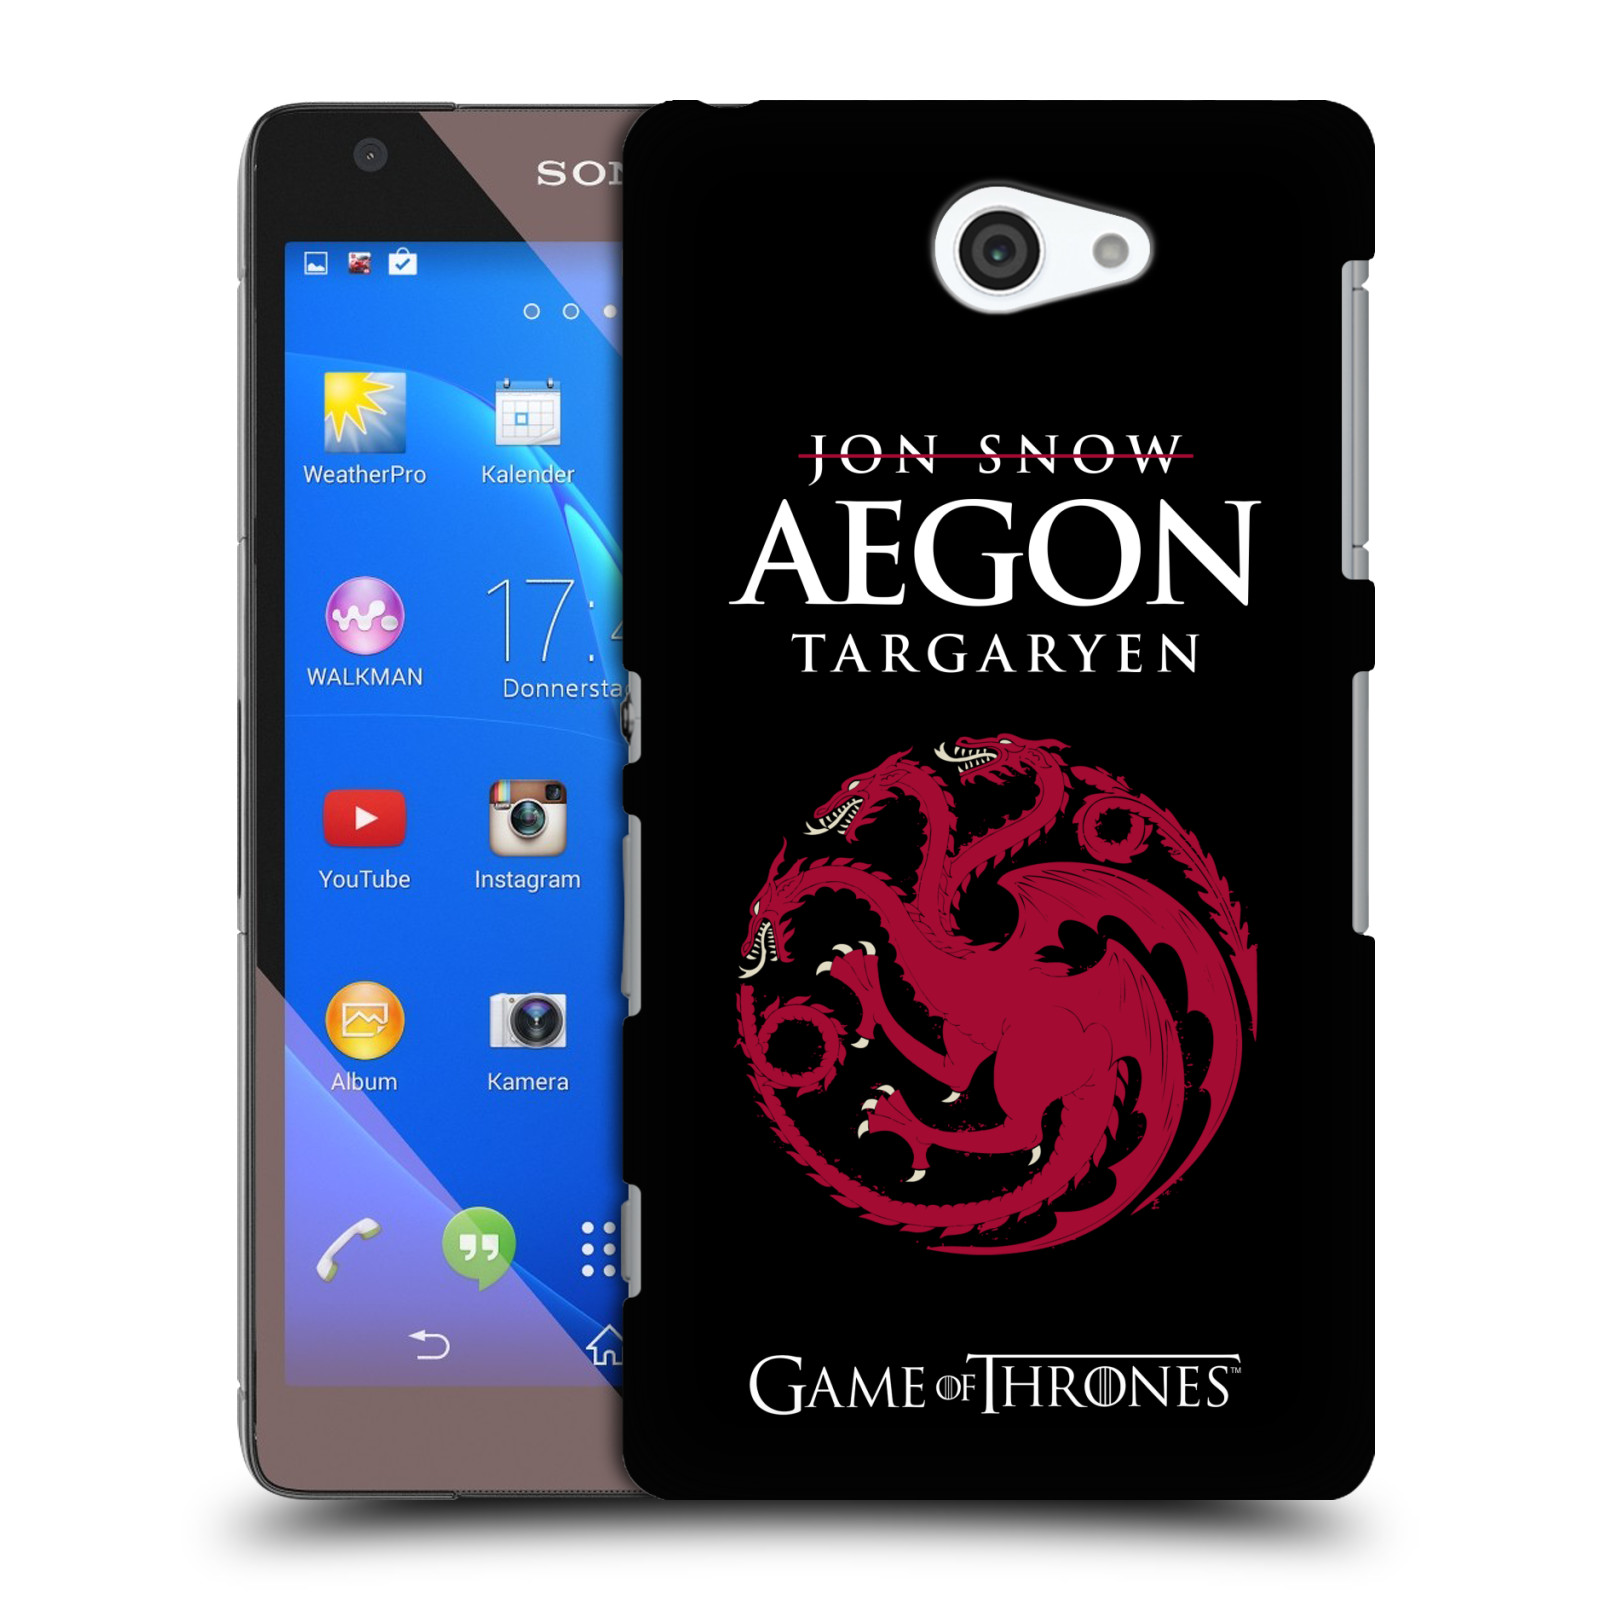 OFFICIEL-HBO-GAME-OF-THRONES-GRAPHISME-ETUI-COQUE-POUR-SONY-TELEPHONES-4